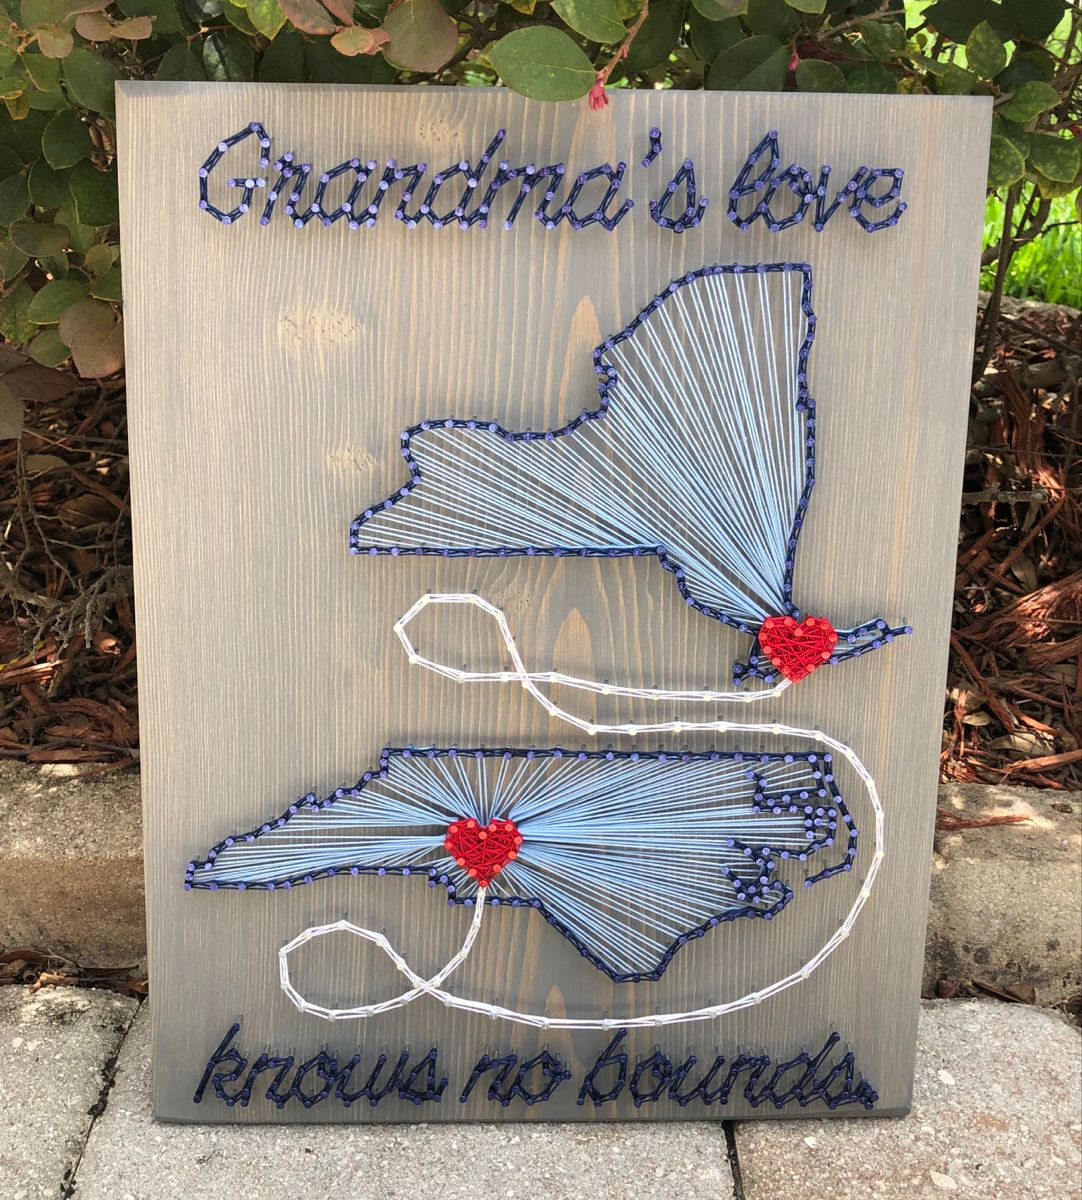 Pin on KiwiStrings {String Art}